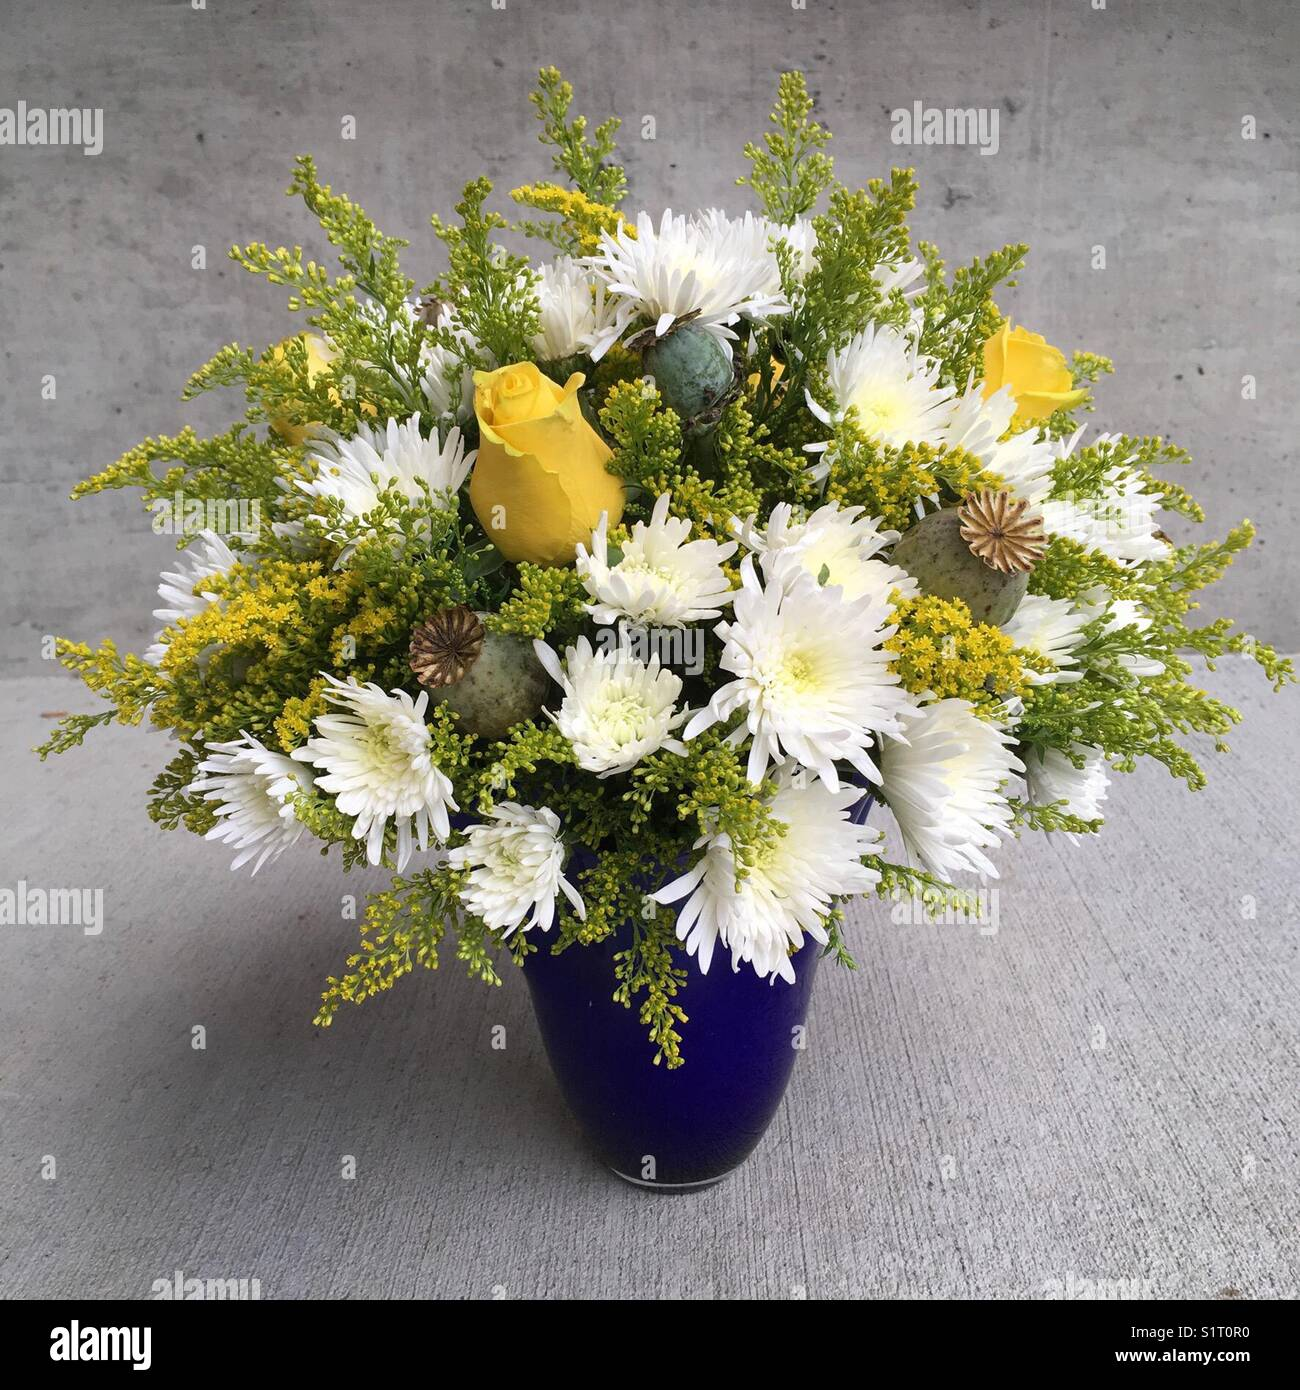 White And Yellow Floral Arrangement In Blue Vase Stock Photo